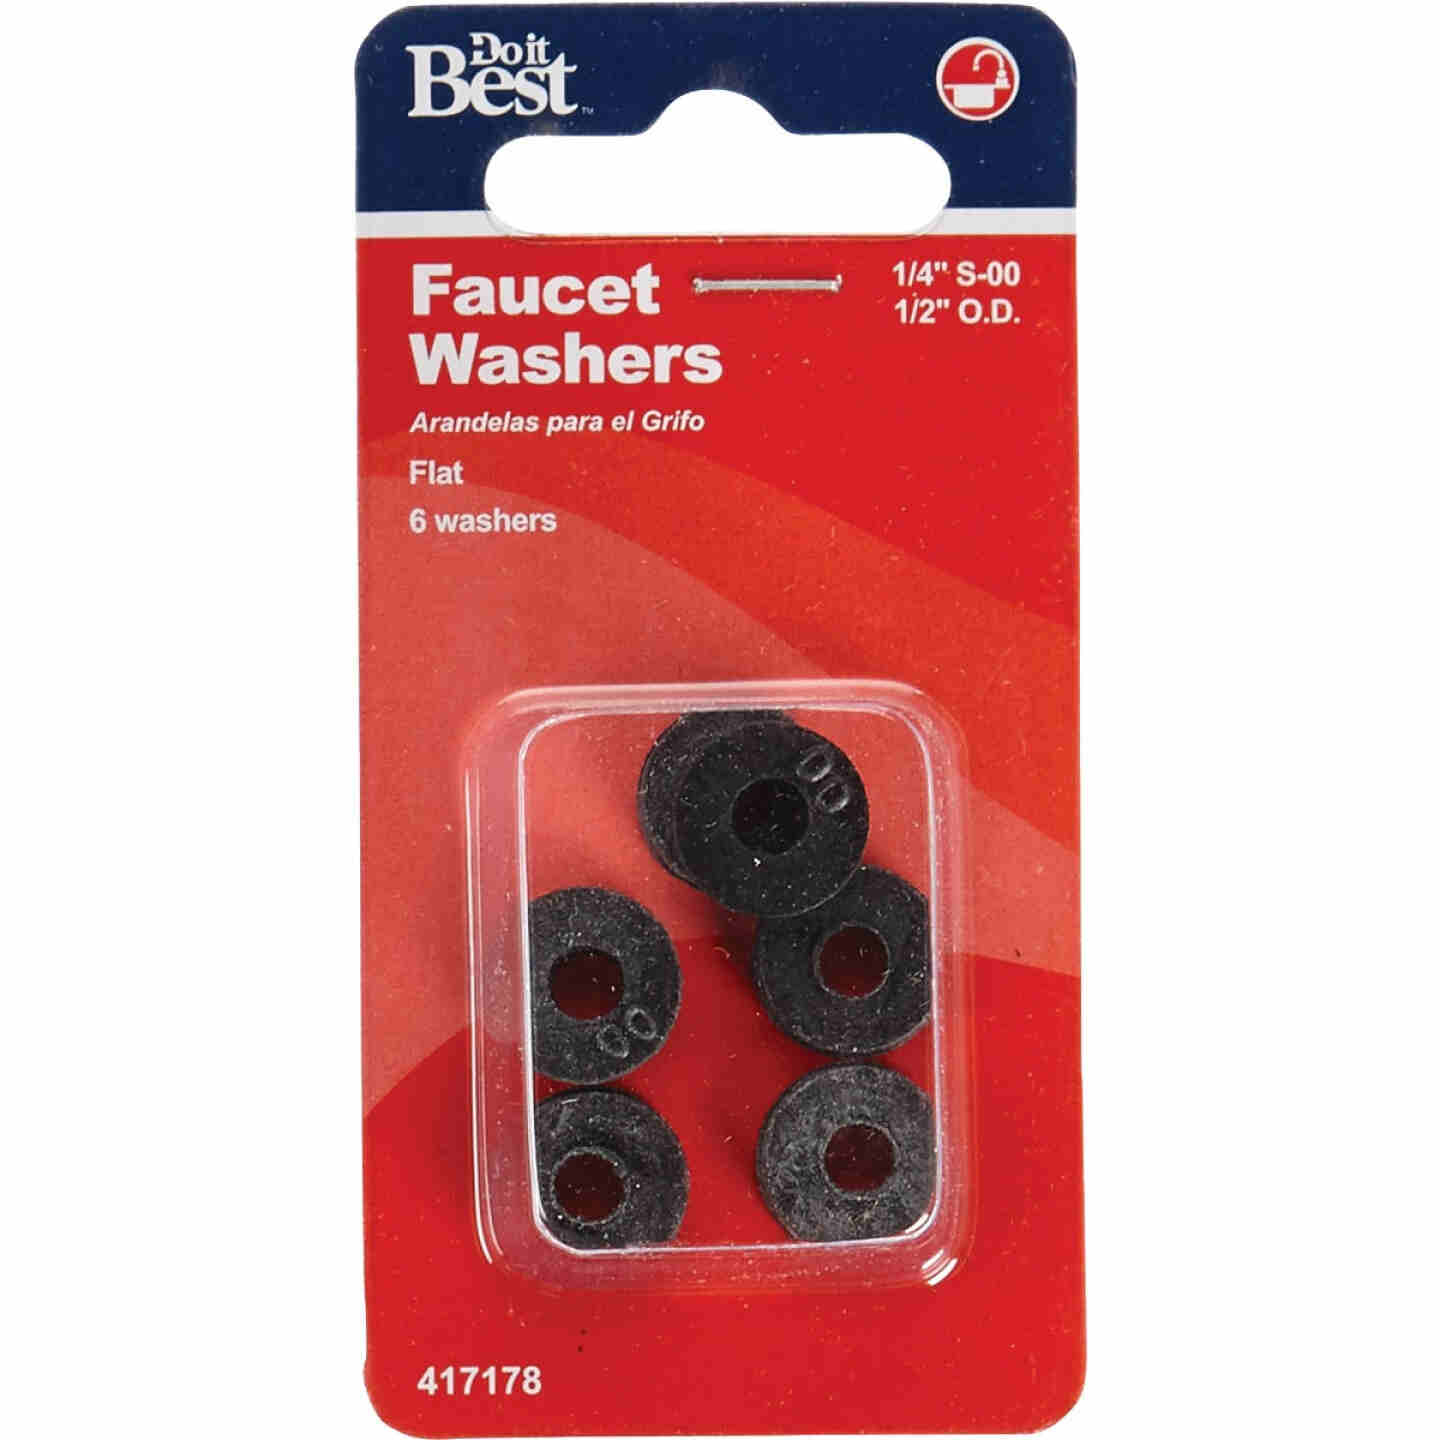 Do it 1/2 In. Black Toilet spud Faucet Washer (6 Ct.) Image 2